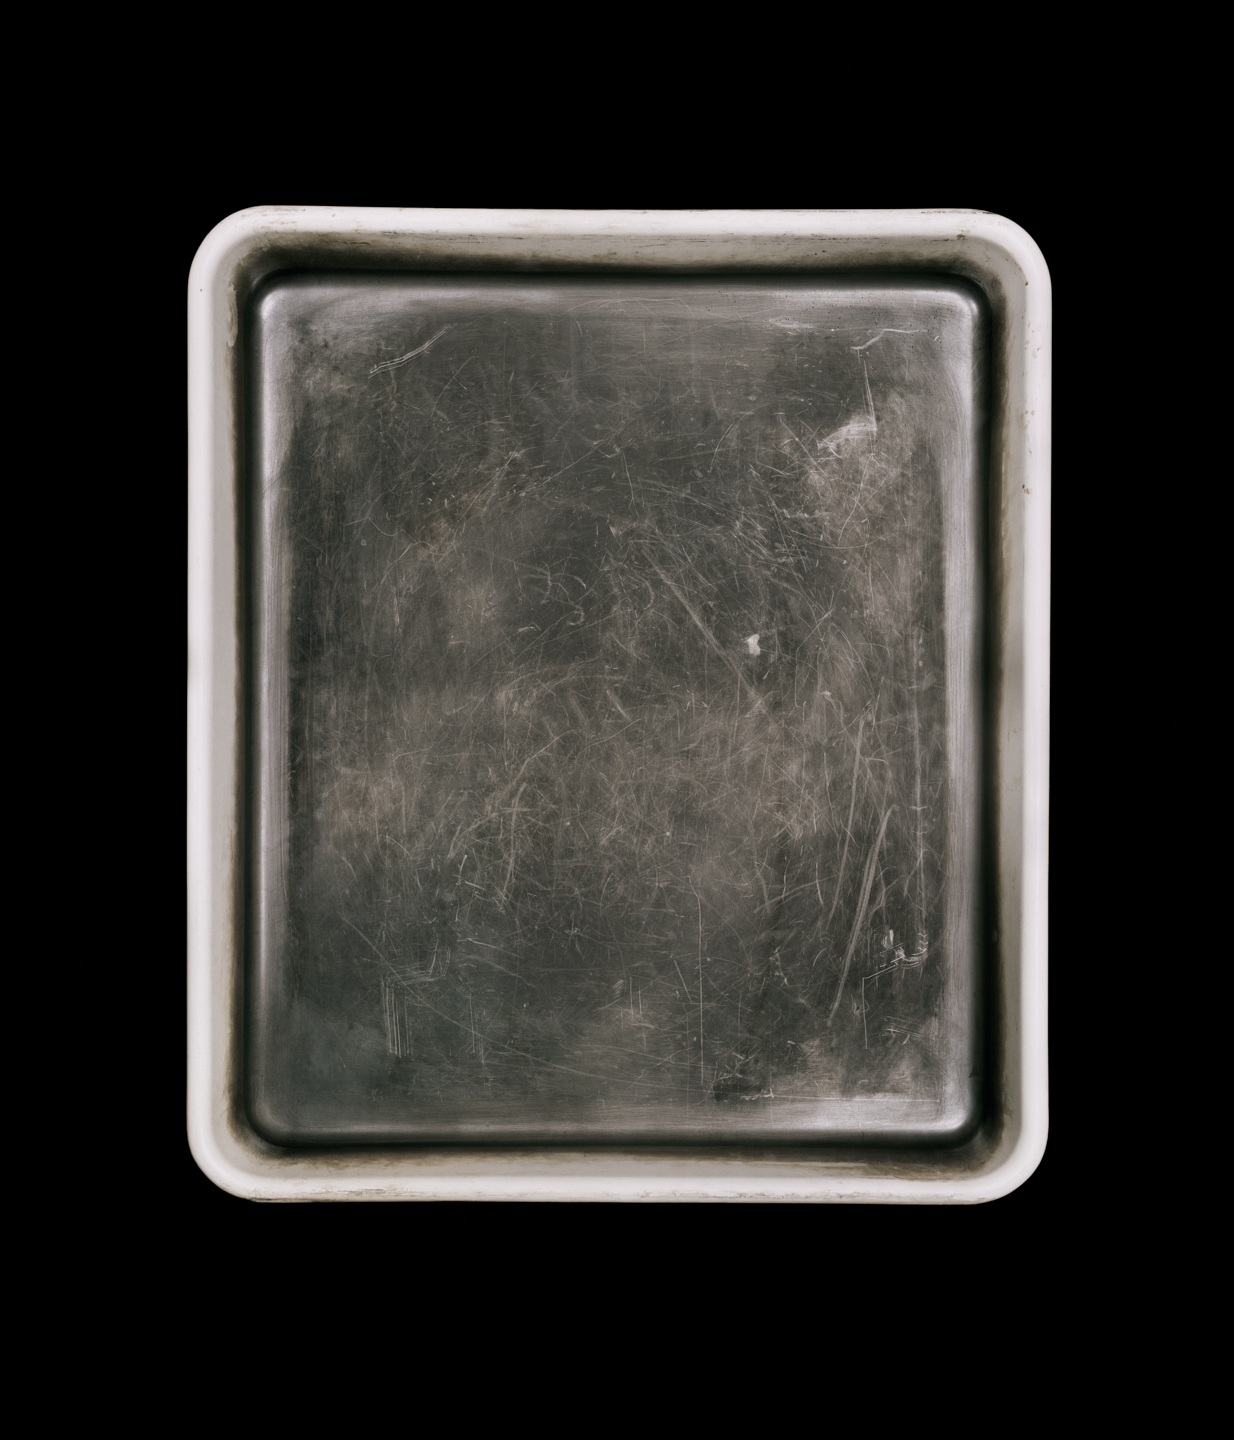 Abelardo Morell's Developer Tray, 2010